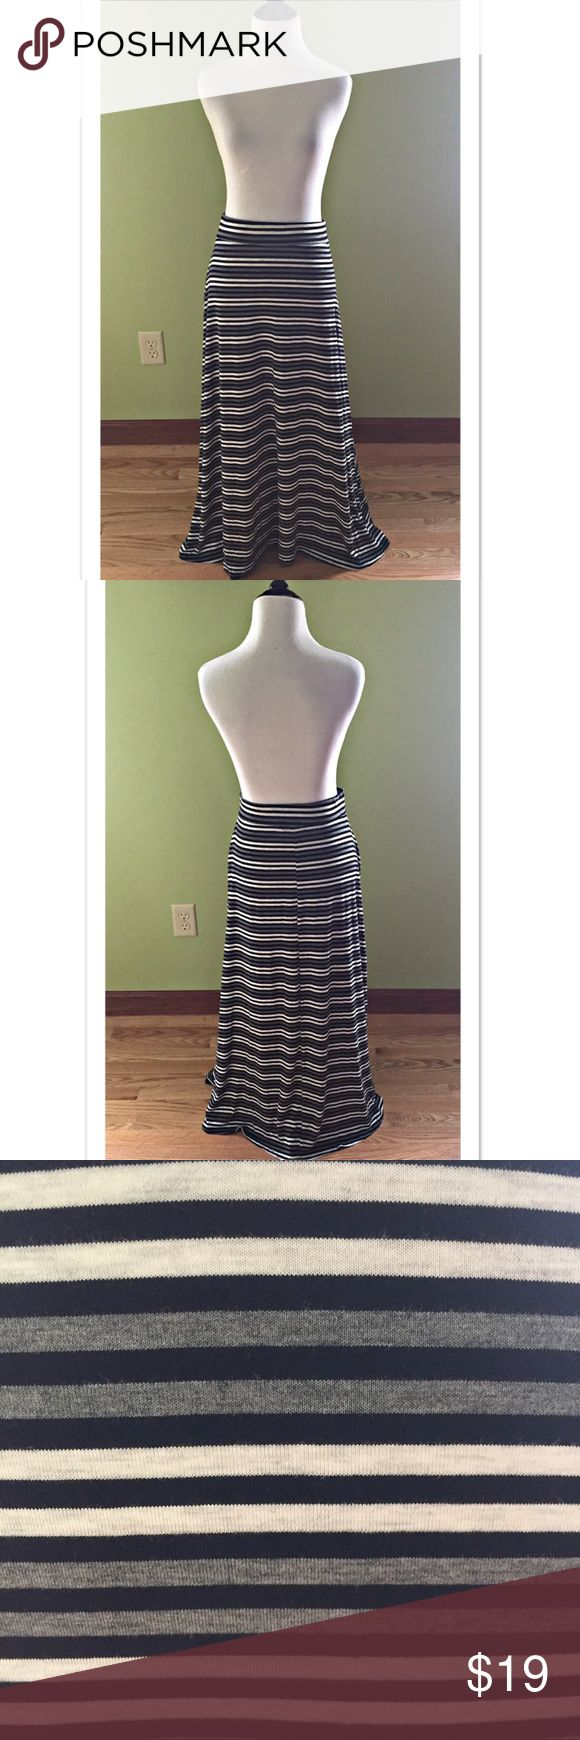 """Style & Co Striped Maxi Skirt Fun and easy Striped Maxi skirt from Style & Co. Pull on style, this skirt is 95% rayon; 5% spandex. Waist measures 15.5"""" across (unstretched); length 36"""". EUC Style & Co Skirts Maxi"""